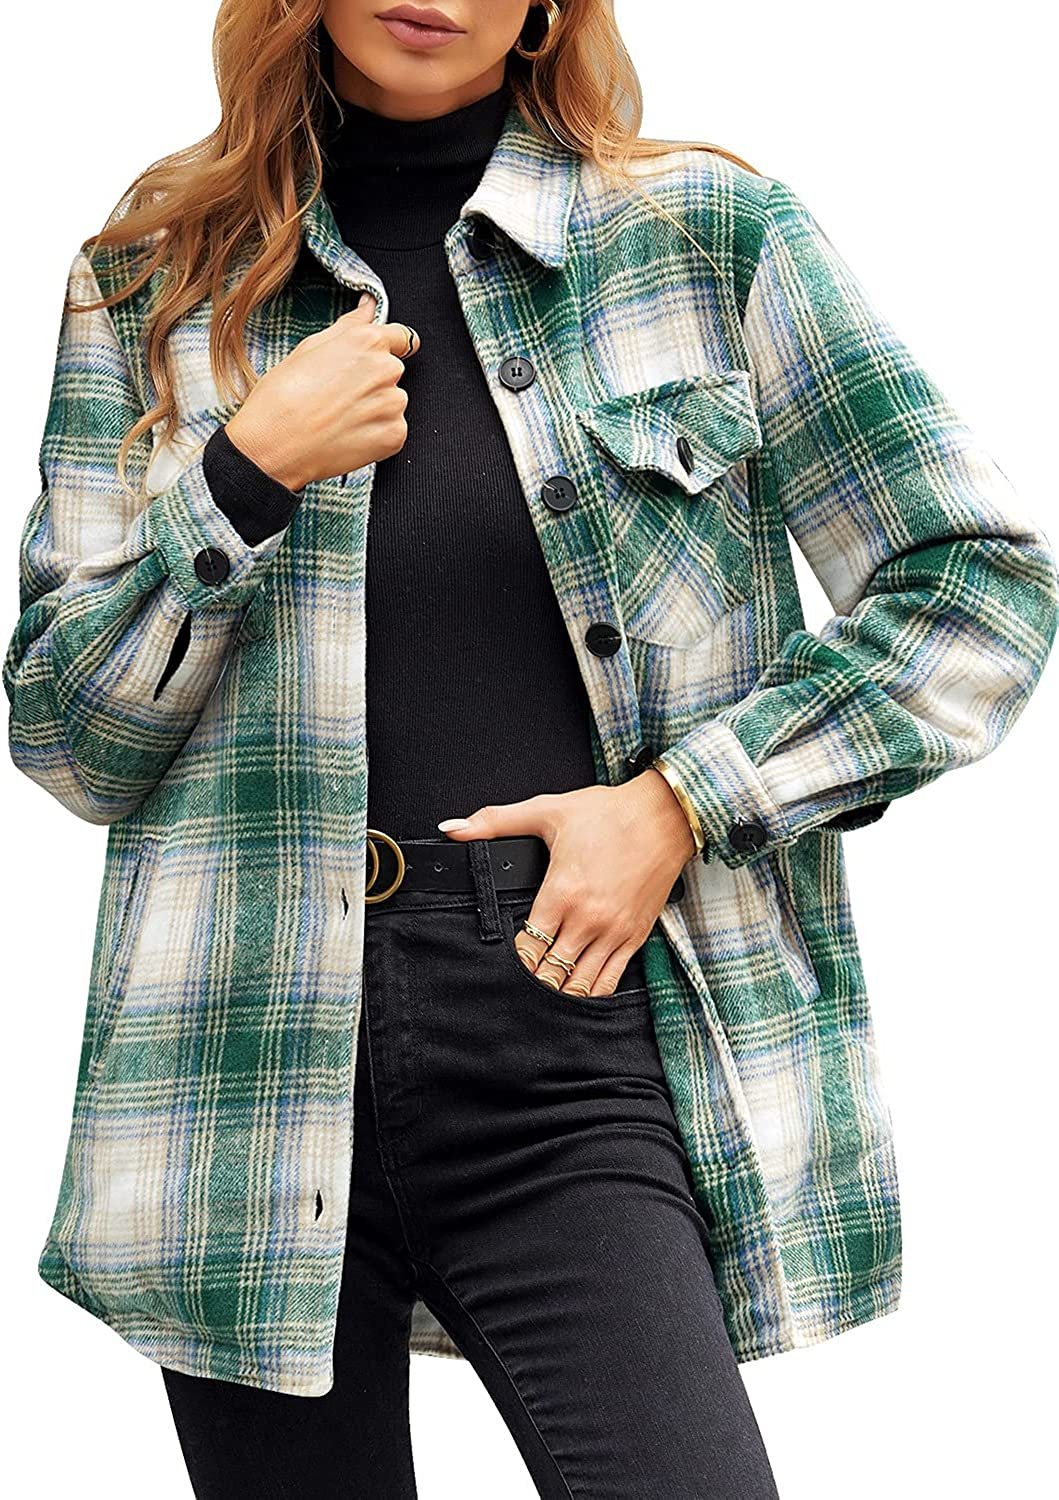 GRAPENT Women's Oversized Plaid Button Shirt Lined 2021 model Down Quilted Popular overseas